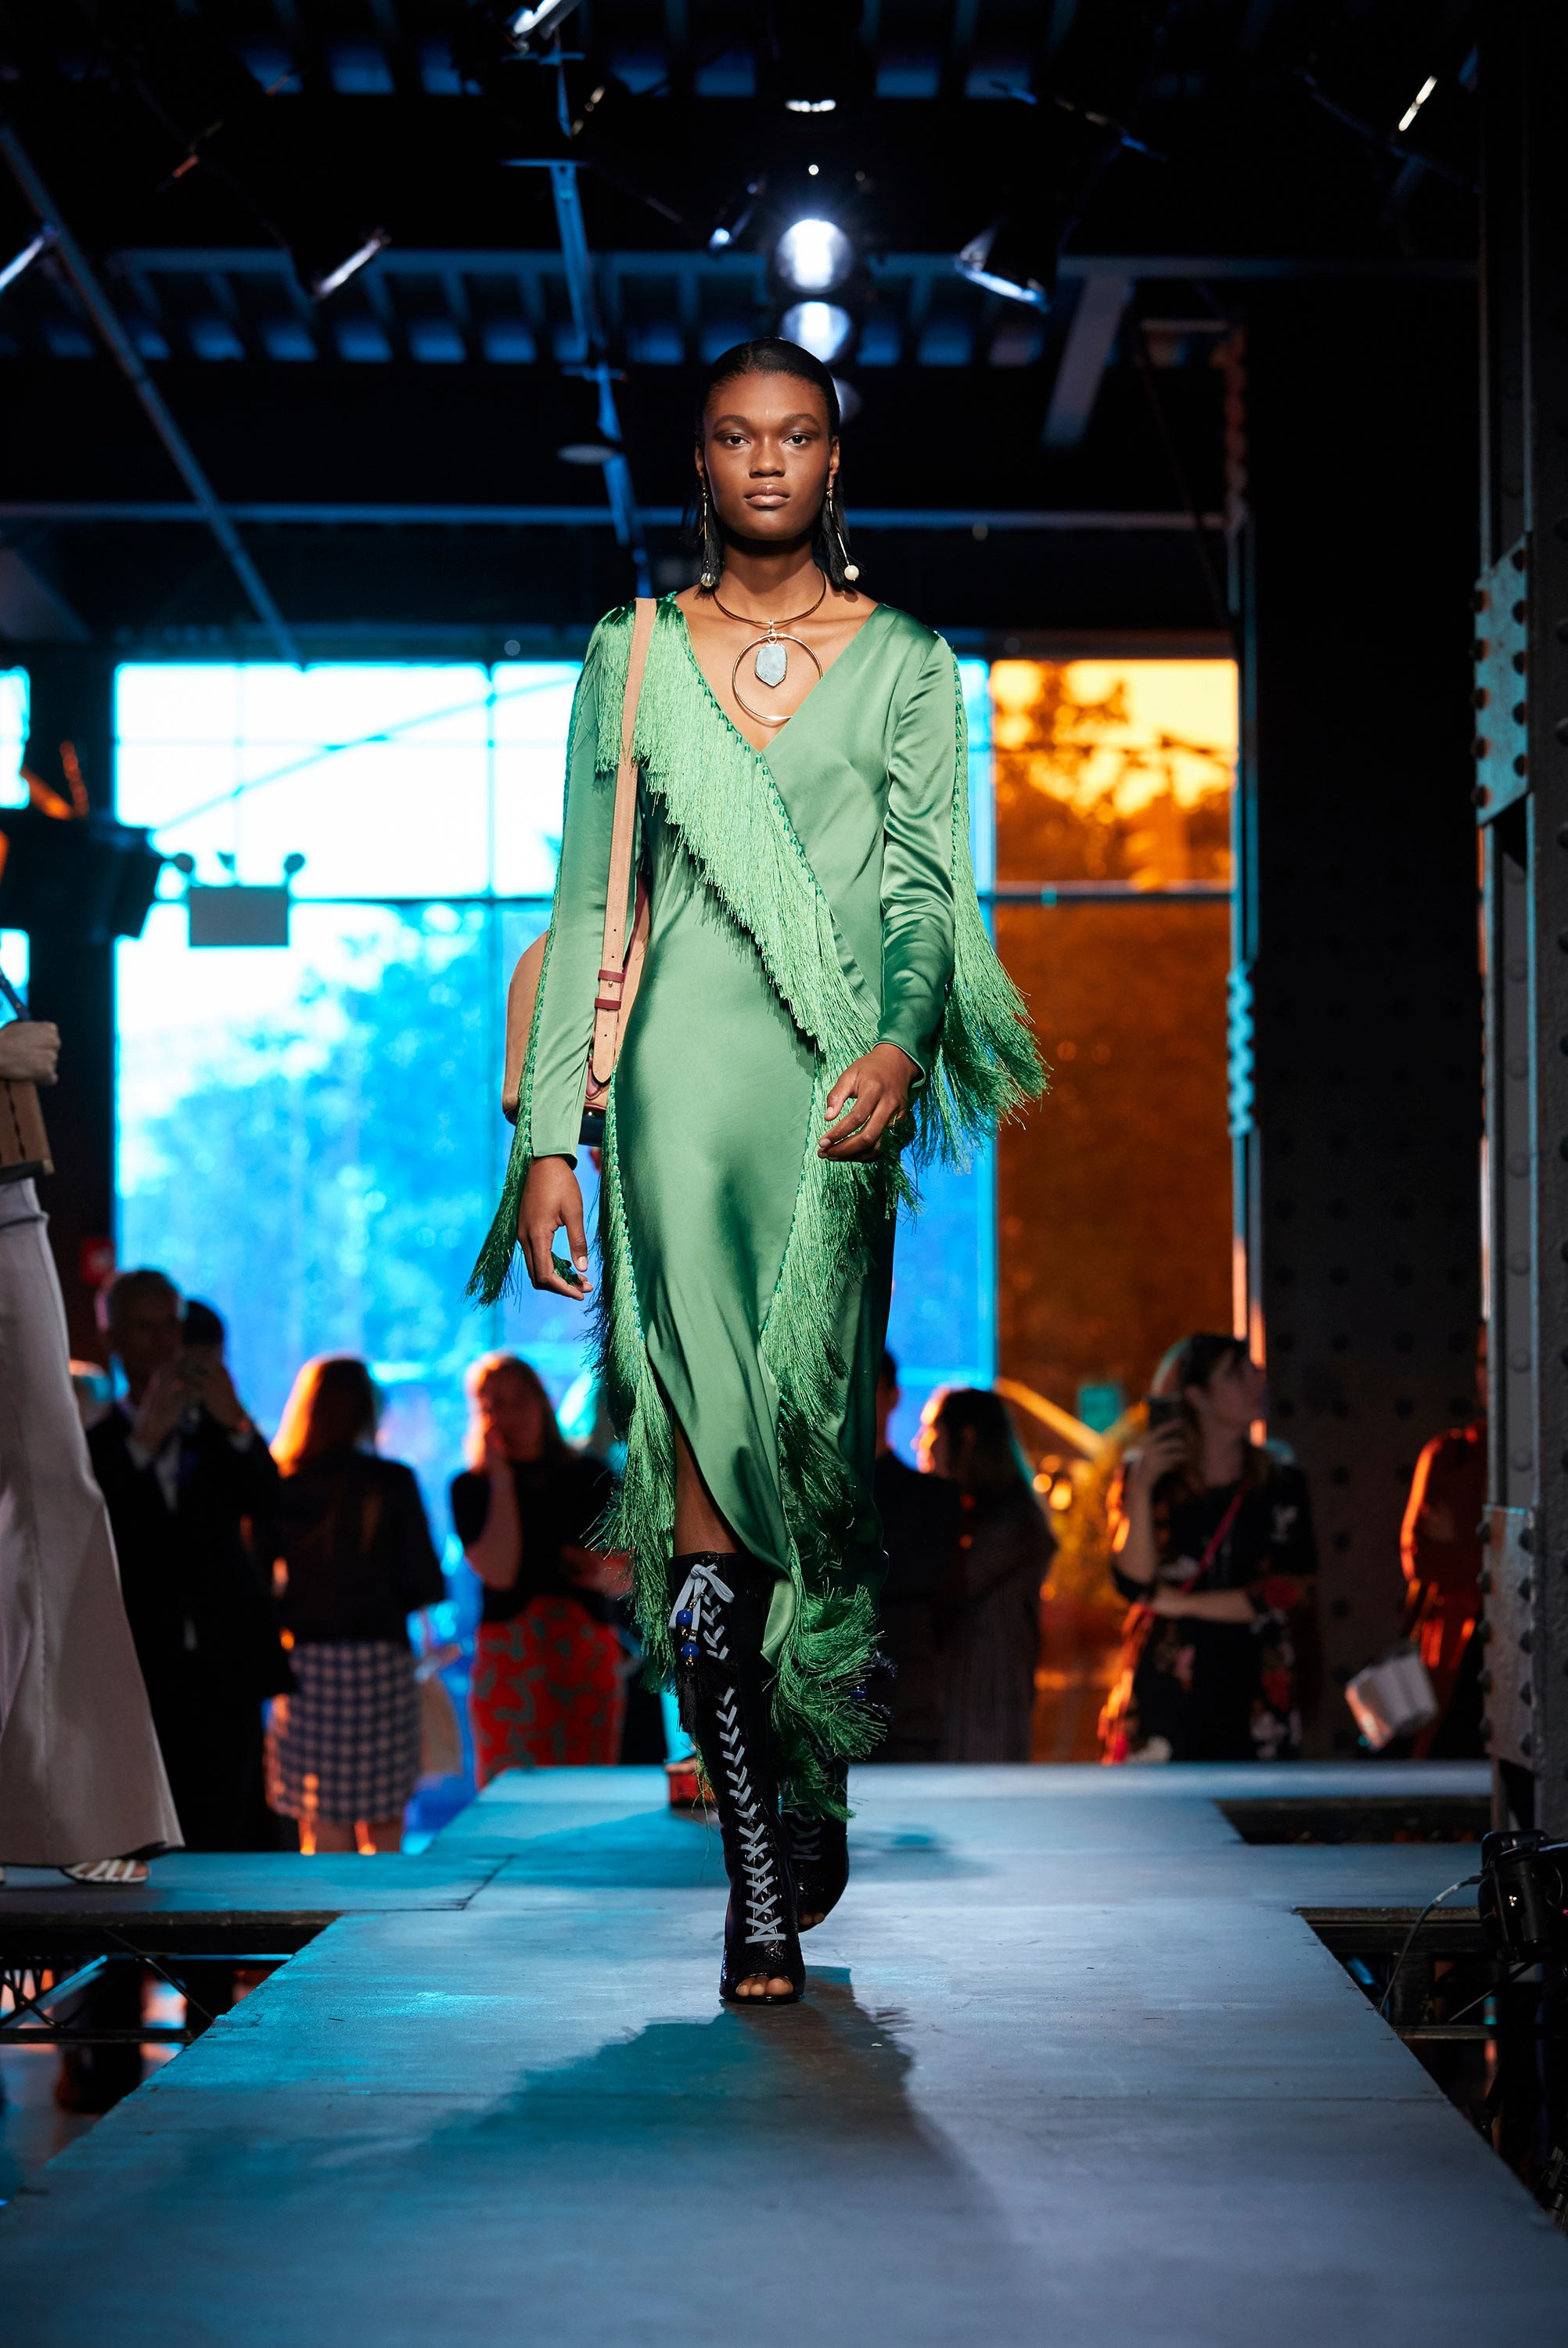 New York Fashion Week 2017 - Diane von Furstenberg Spring 2018 NYFW - green silk dress with fringe - 70s inspired dresses - Jonathan Saunders - v-neck dress - DVF